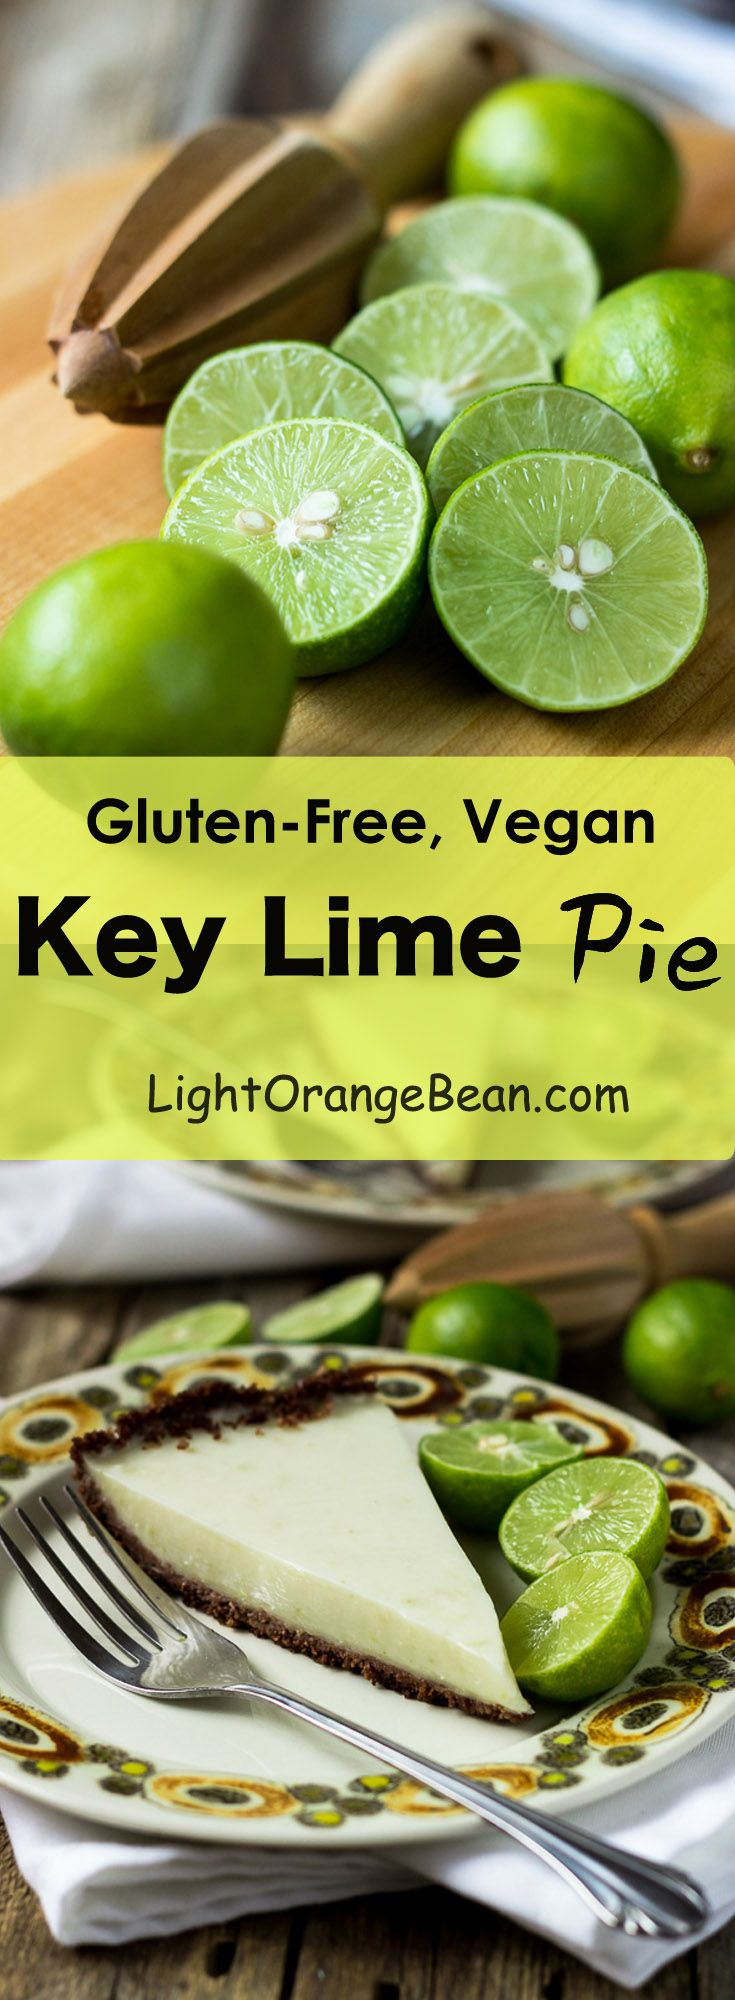 This authentic real key lime pie is a combination of freshness, sweetness, unique tartness, and silky smooth texture. It's also a healthy choice and gluten-free, vegan, no-sugar-added, and low calories.